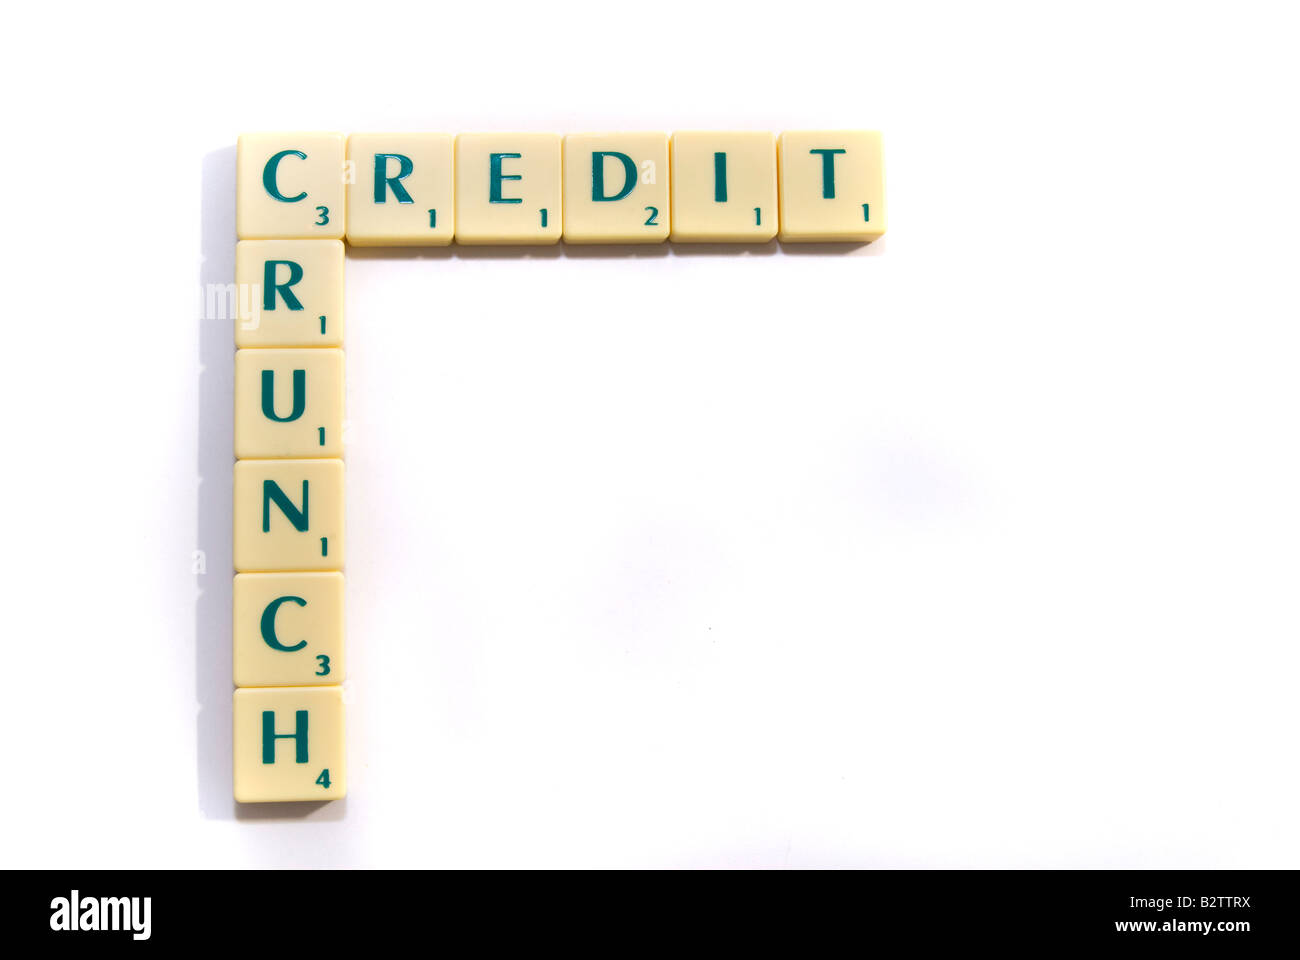 Scrabble pieces spell-out the phrase Credit Crunch - Stock Image